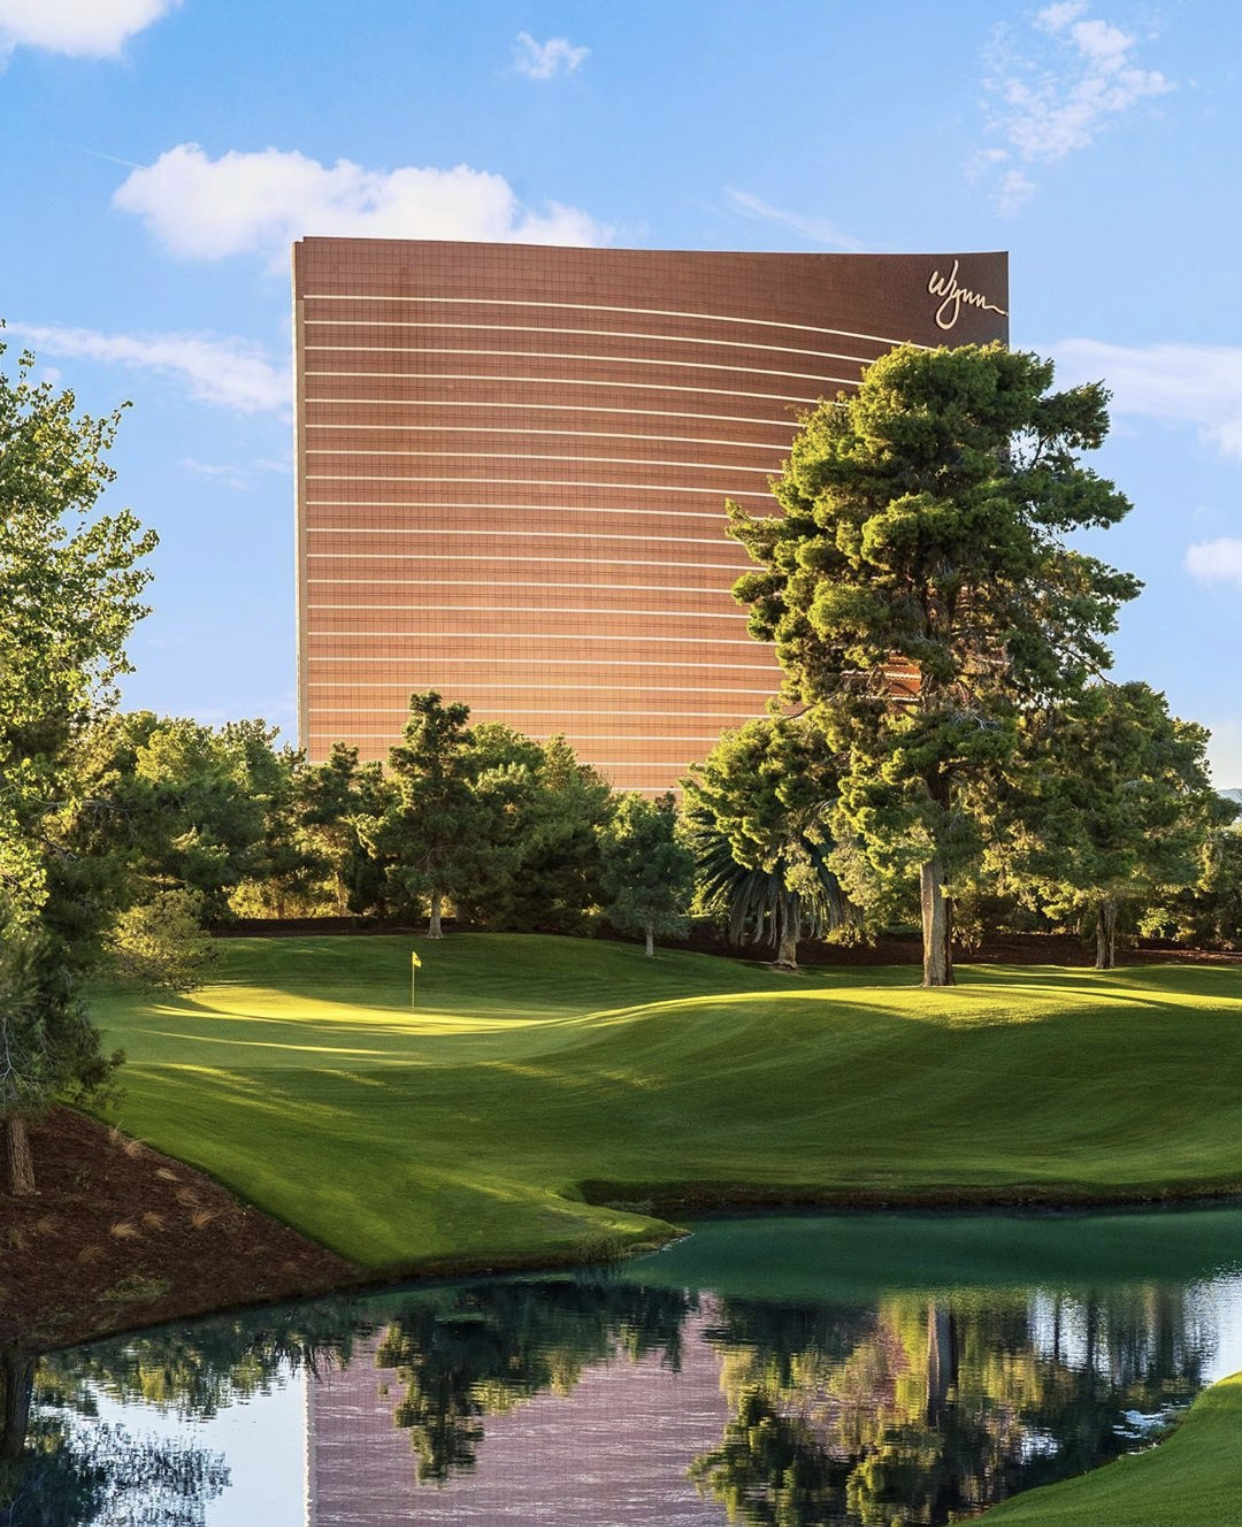 wynn-hotel-las-vegas-travel-blogger